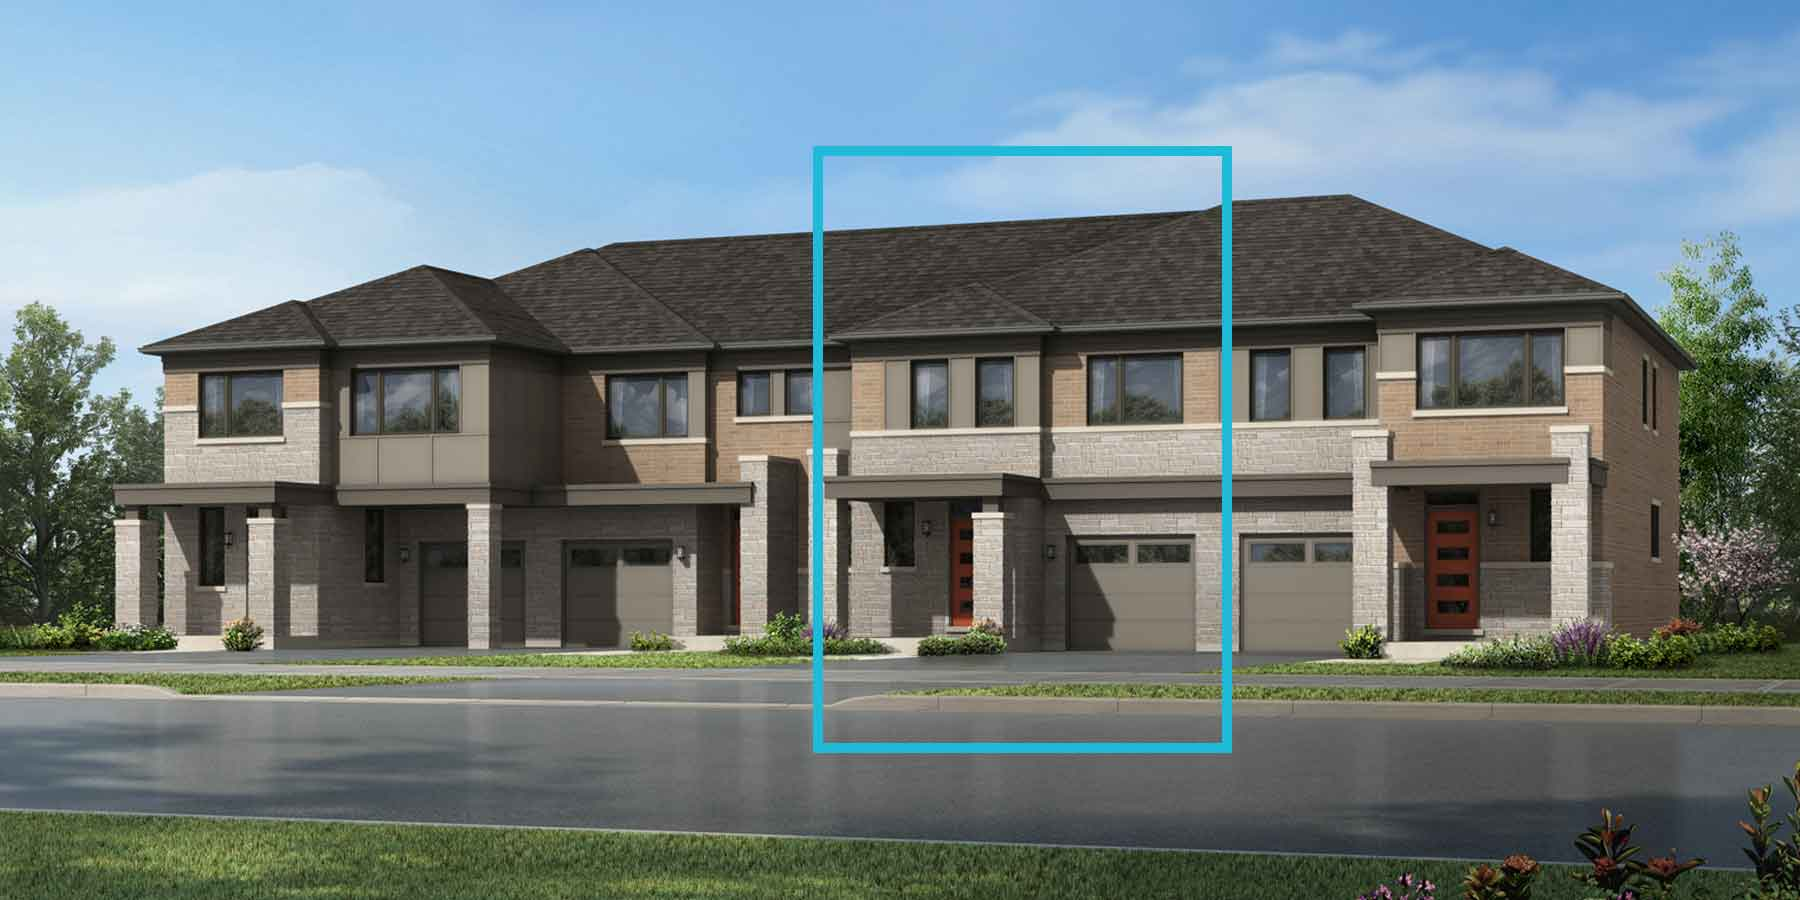 Forestbrook Plan modern_seatonwhitevale_forestbrook at Seaton Whitevale in Pickering Ontario by Mattamy Homes